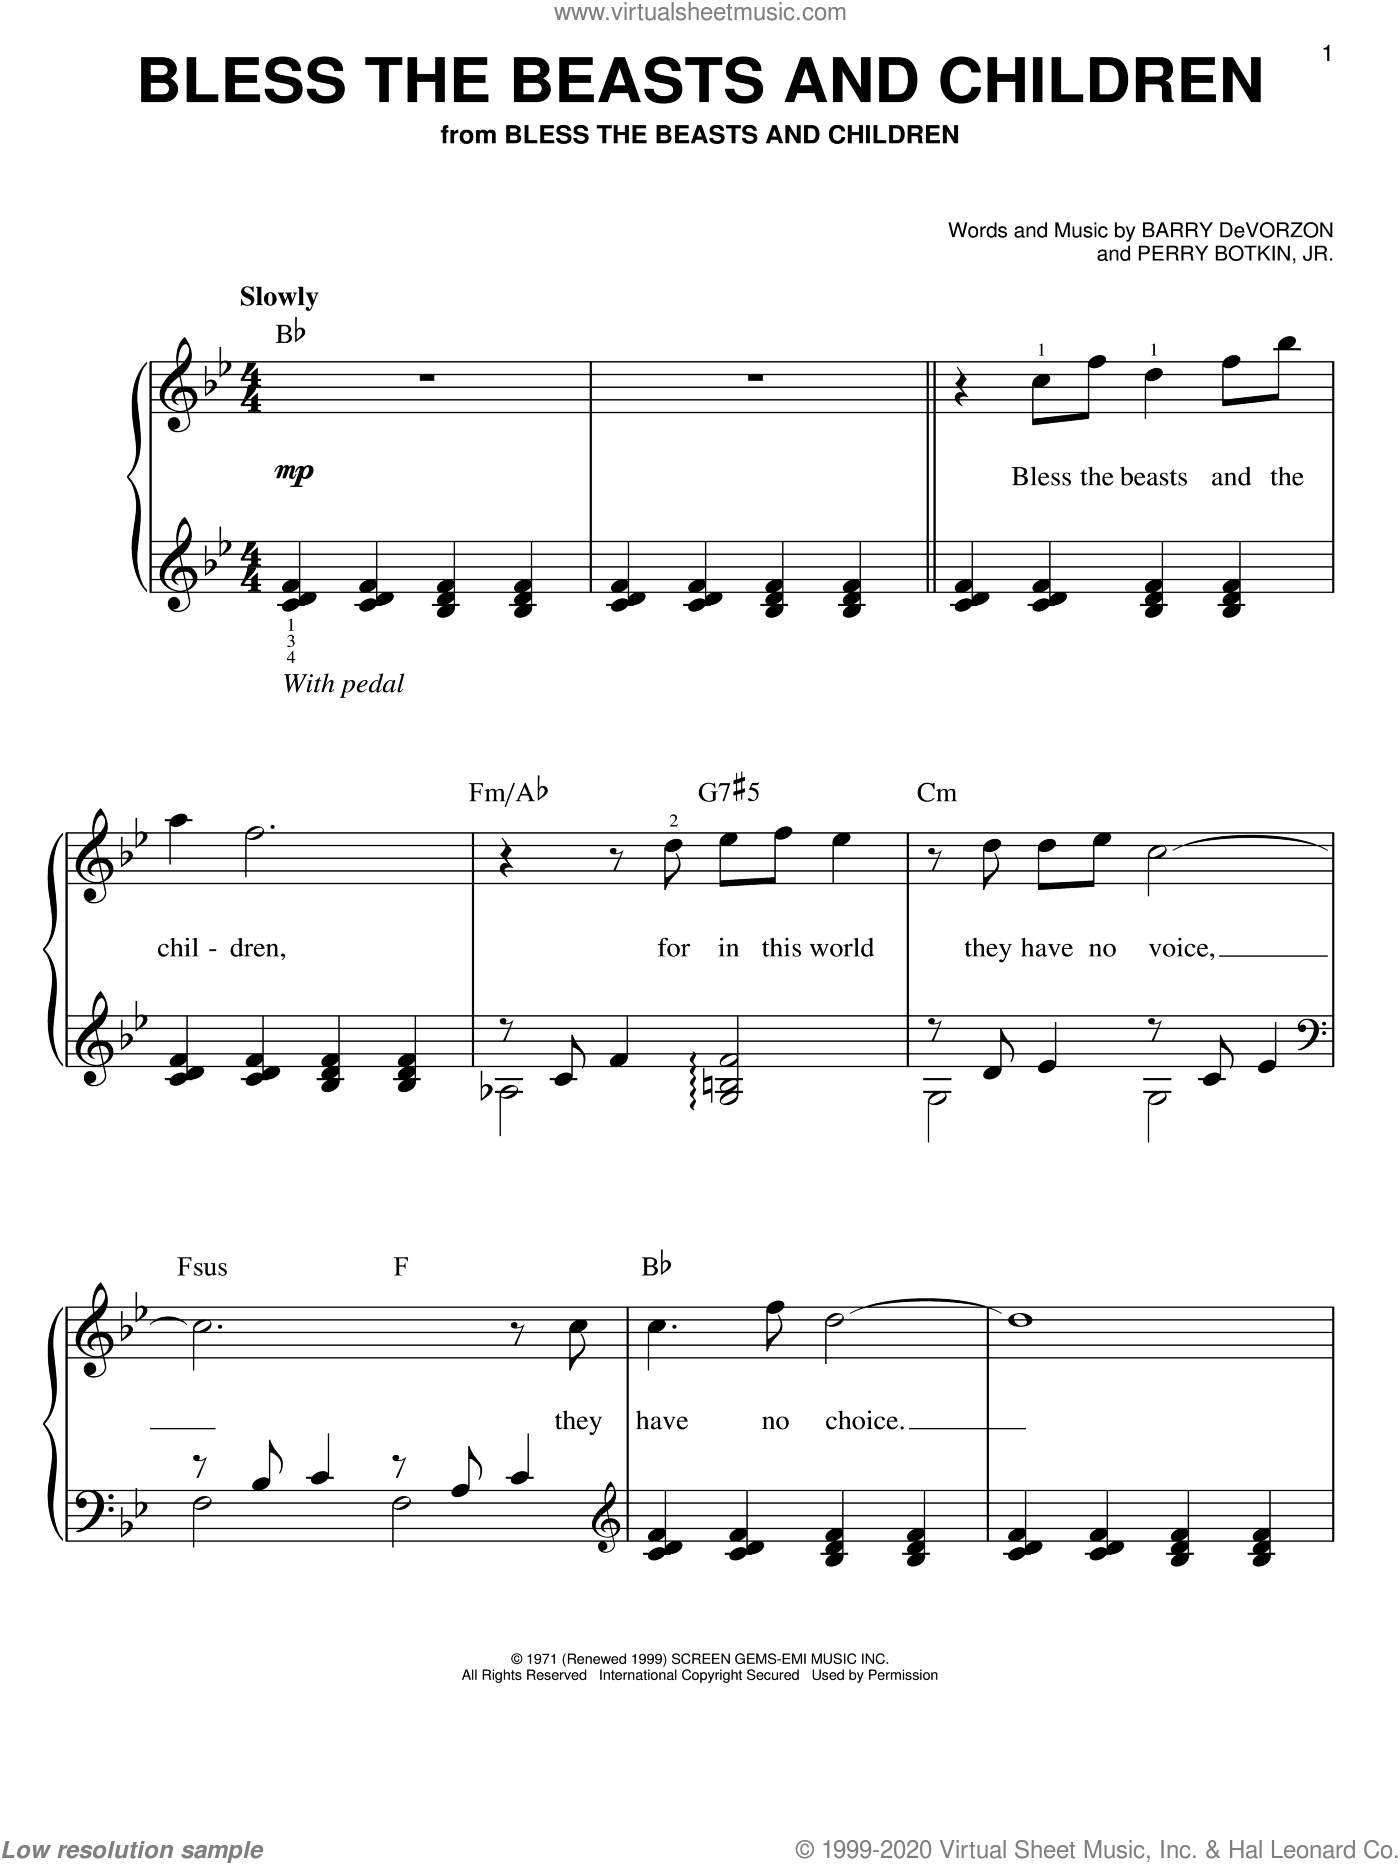 Bless The Beasts And Children sheet music for piano solo by Perry Botkin, Jr., Carpenters and Barry DeVorzon. Score Image Preview.